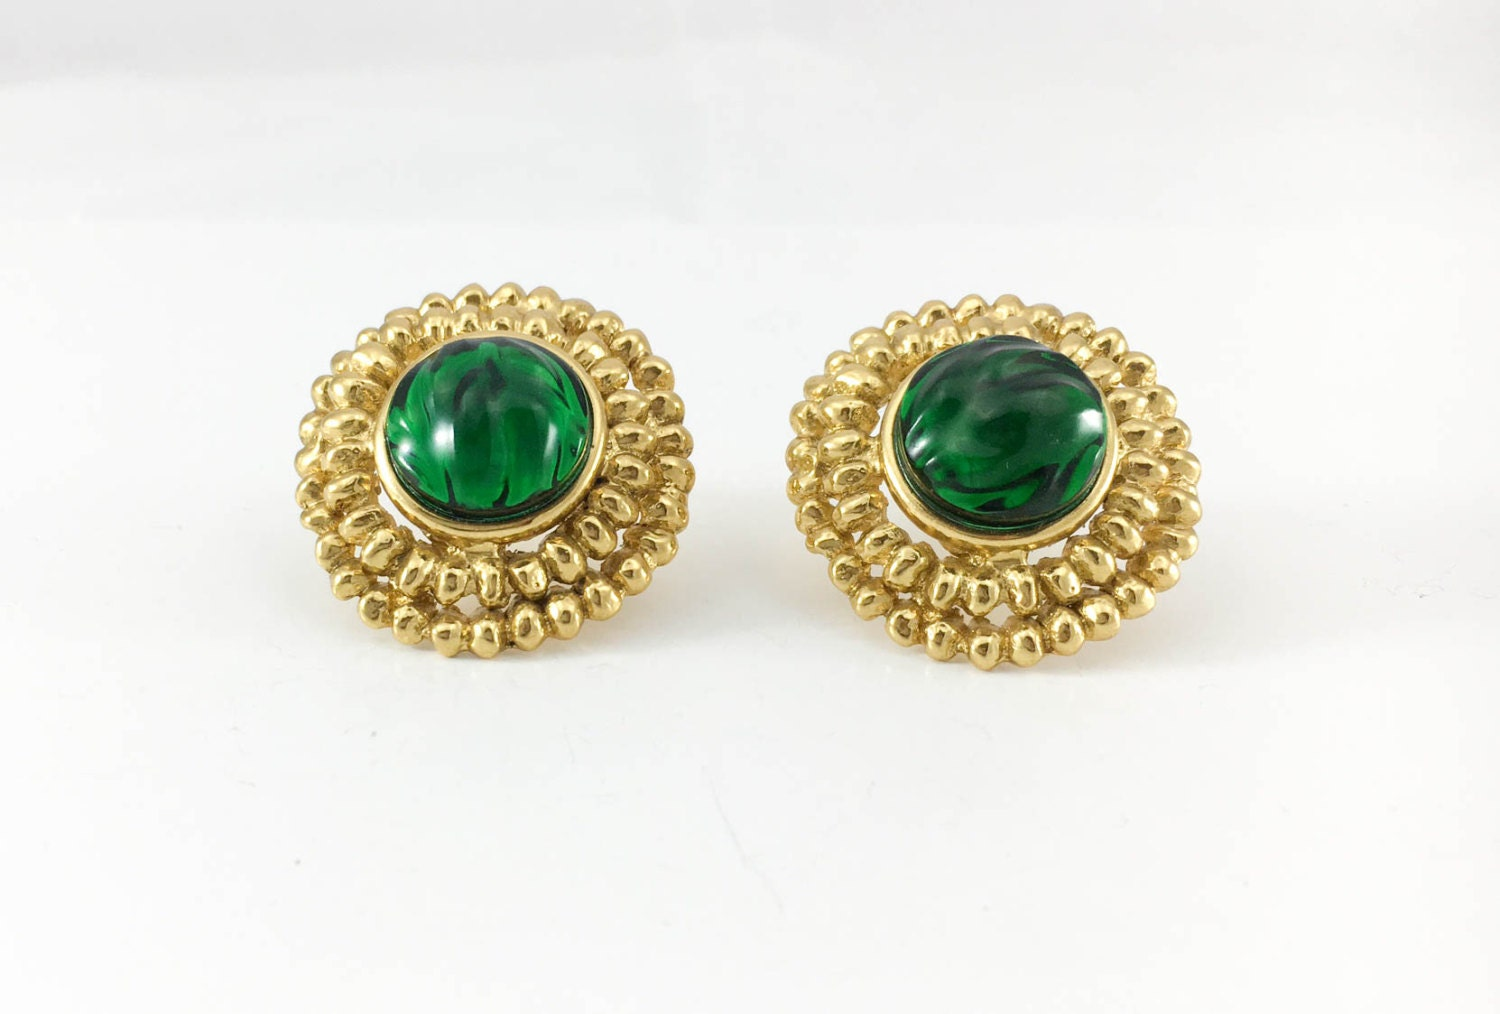 Yves Saint Laurent Emerald Green Gripoix GoldPlated Earrings  1980s